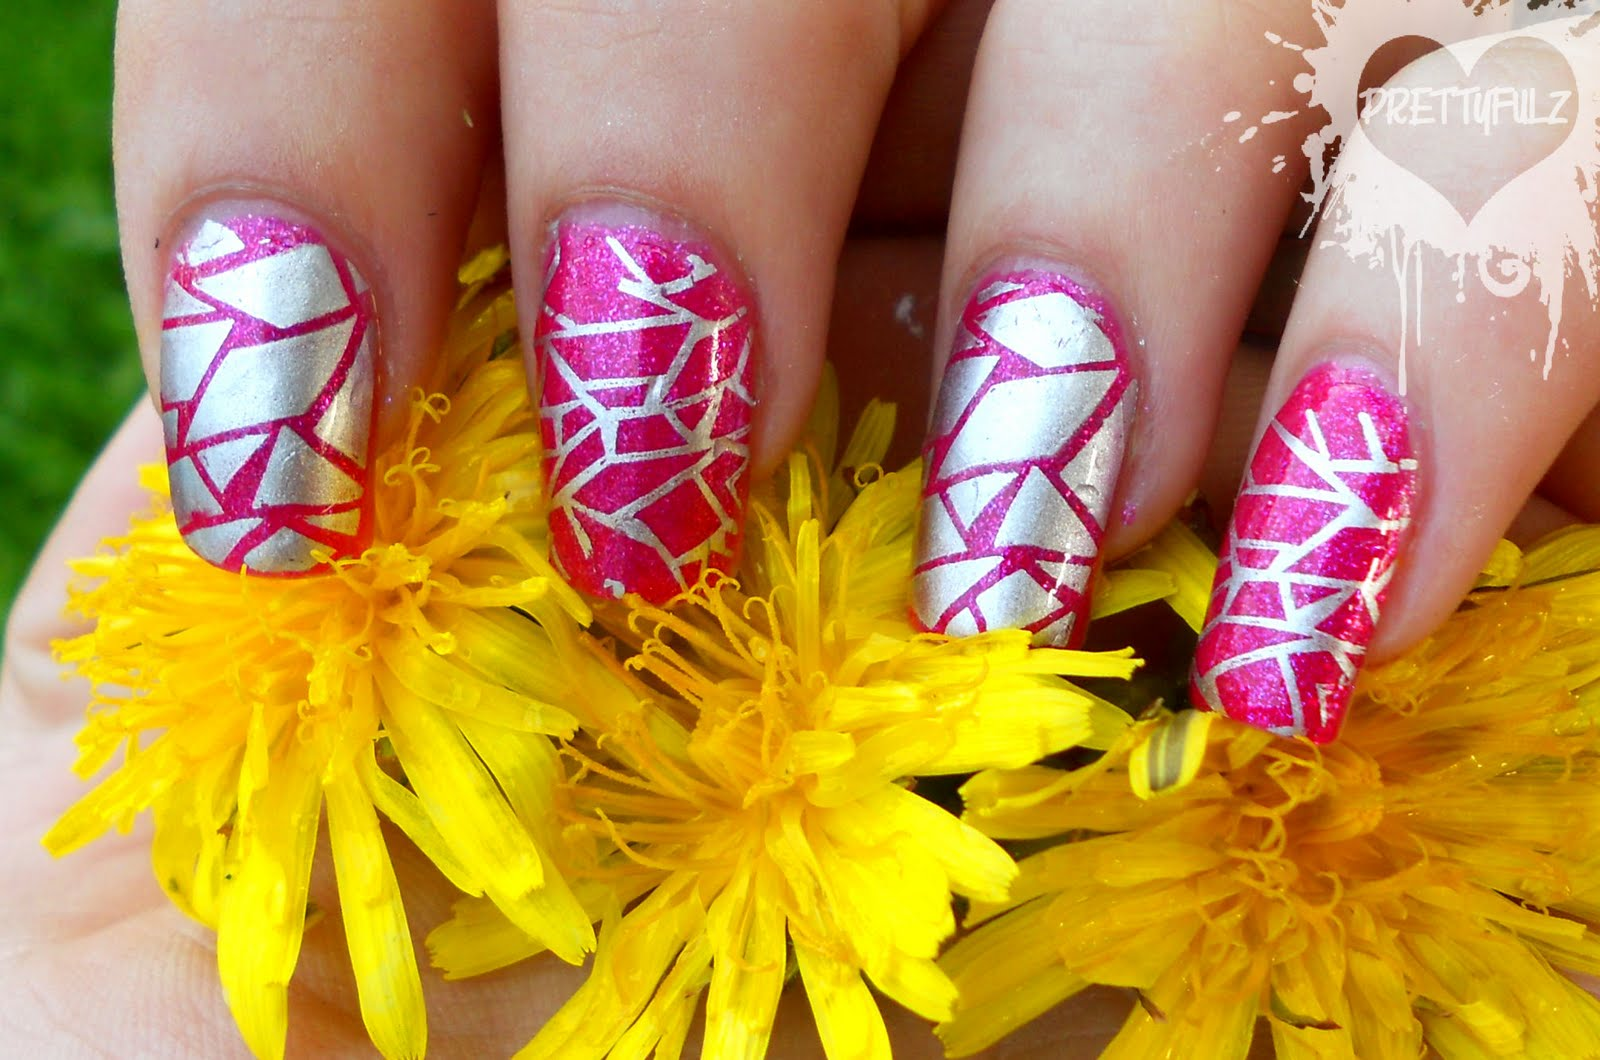 Pink And Silver Nail Designs | Nail Designs, Hair Styles, Tattoos ...